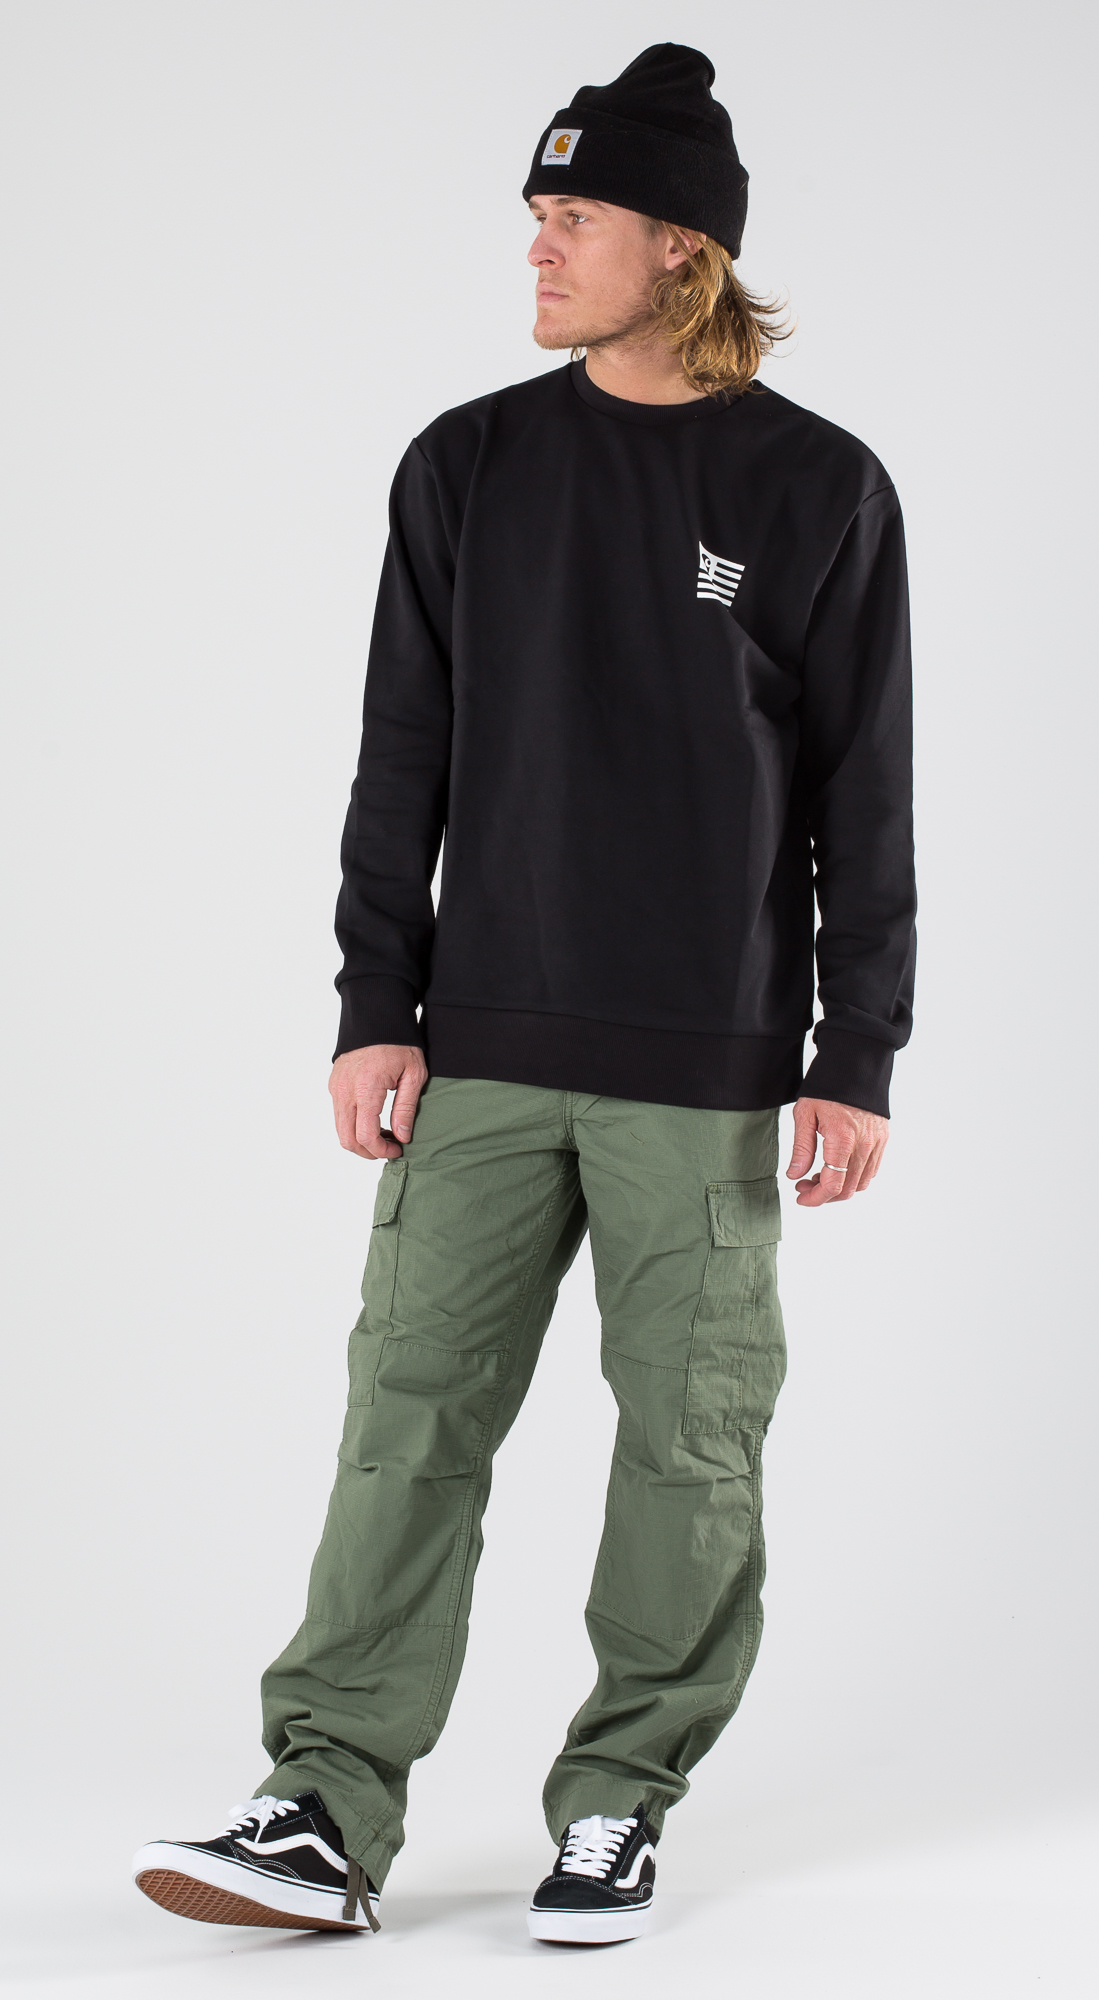 Vans Full Patch Back Camo White Outfit Ridestore